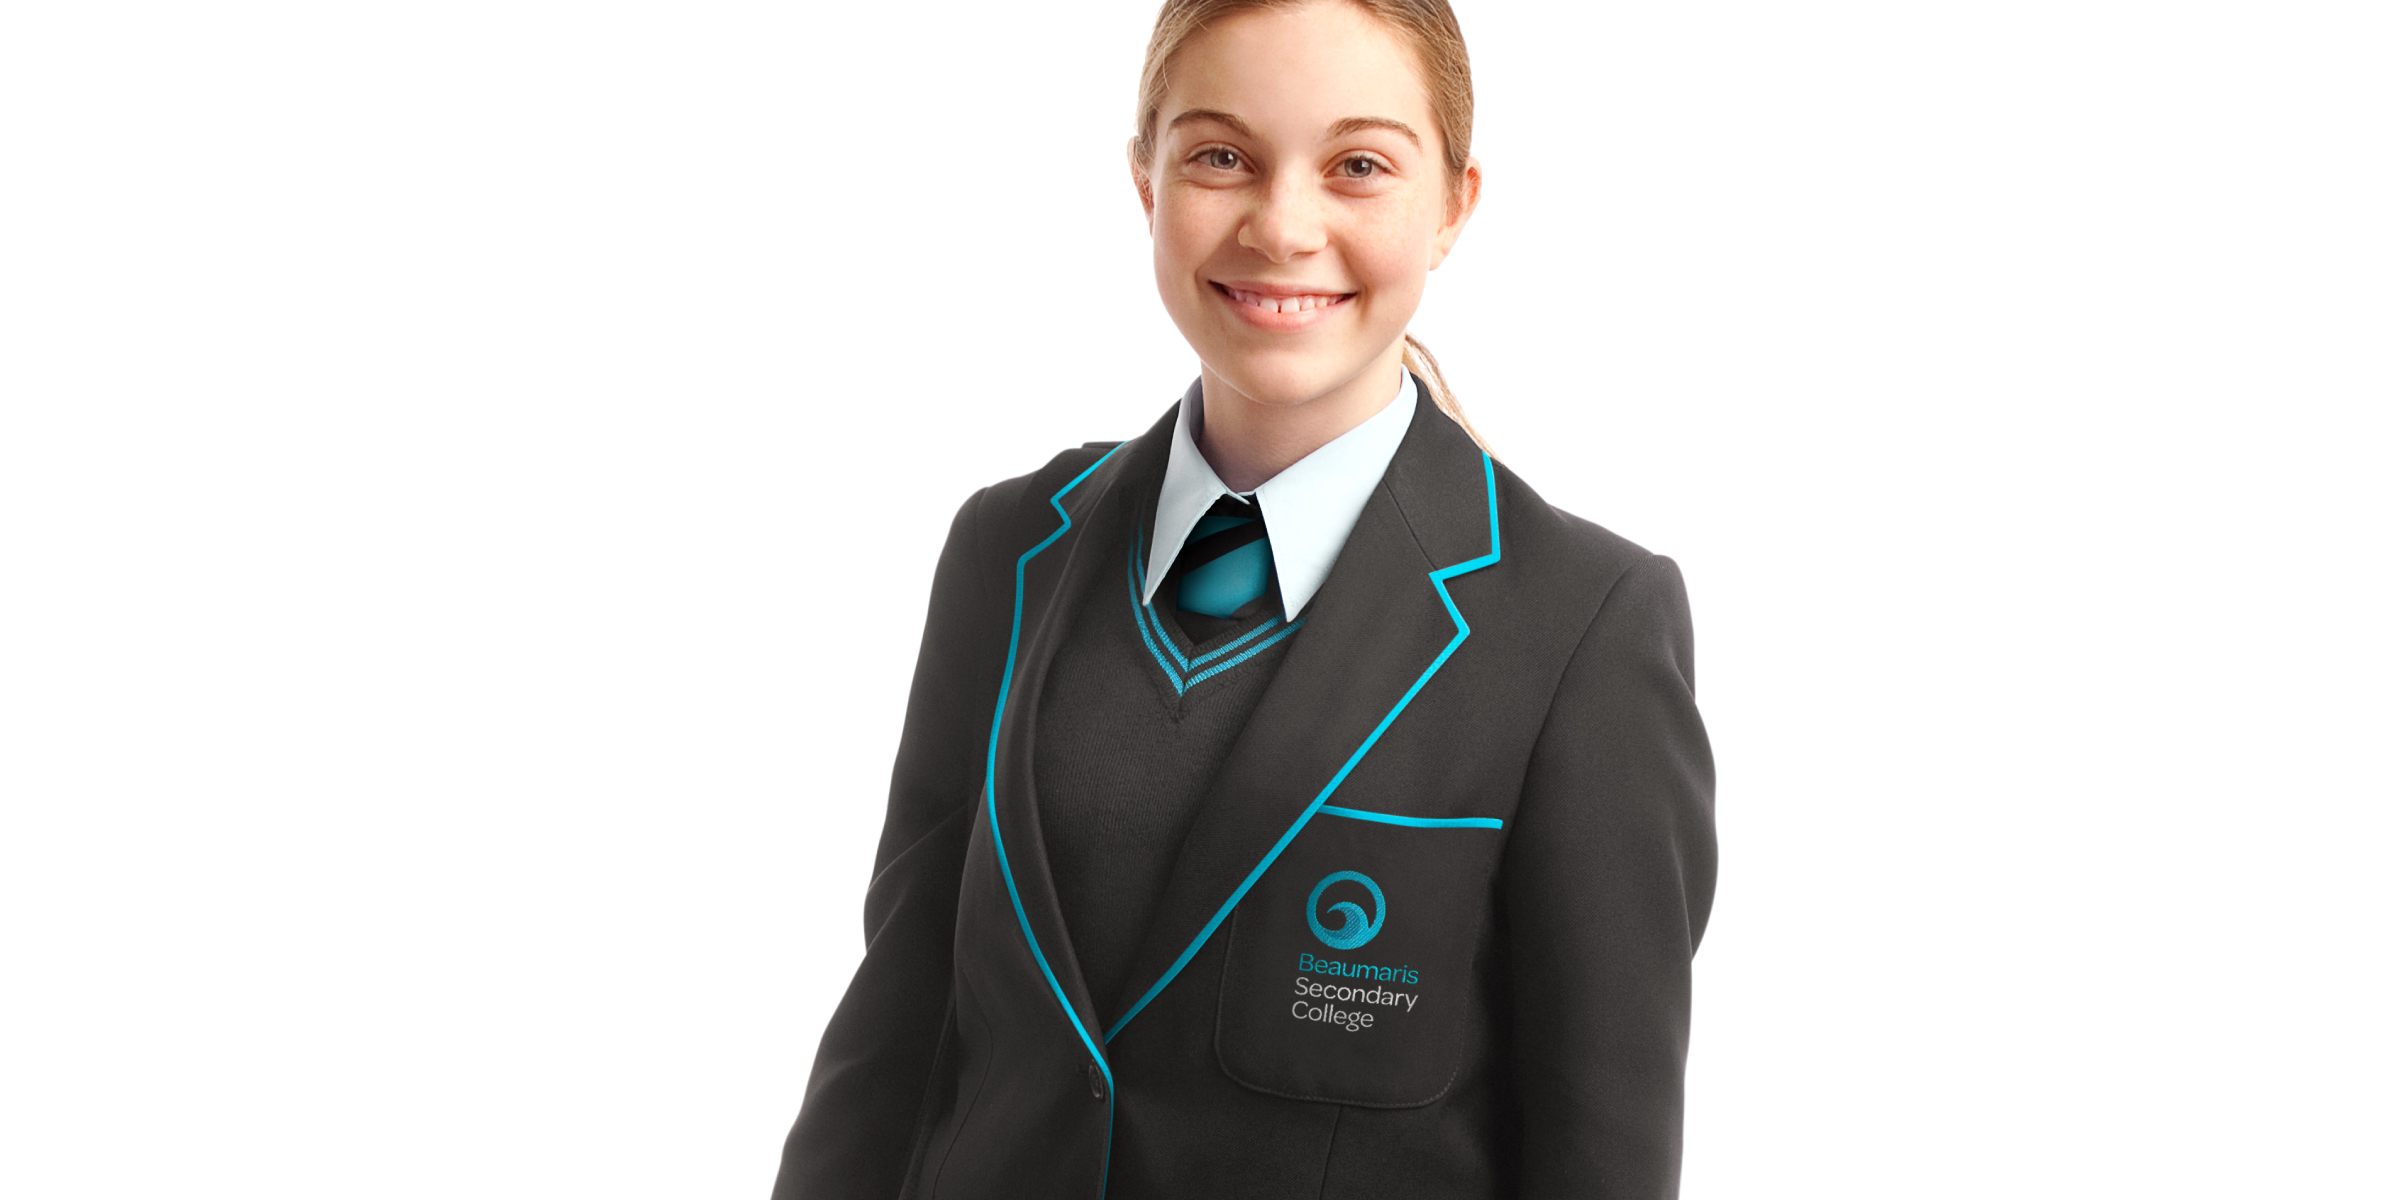 Beaumaris Secondary College Brand Identity Uniform Design